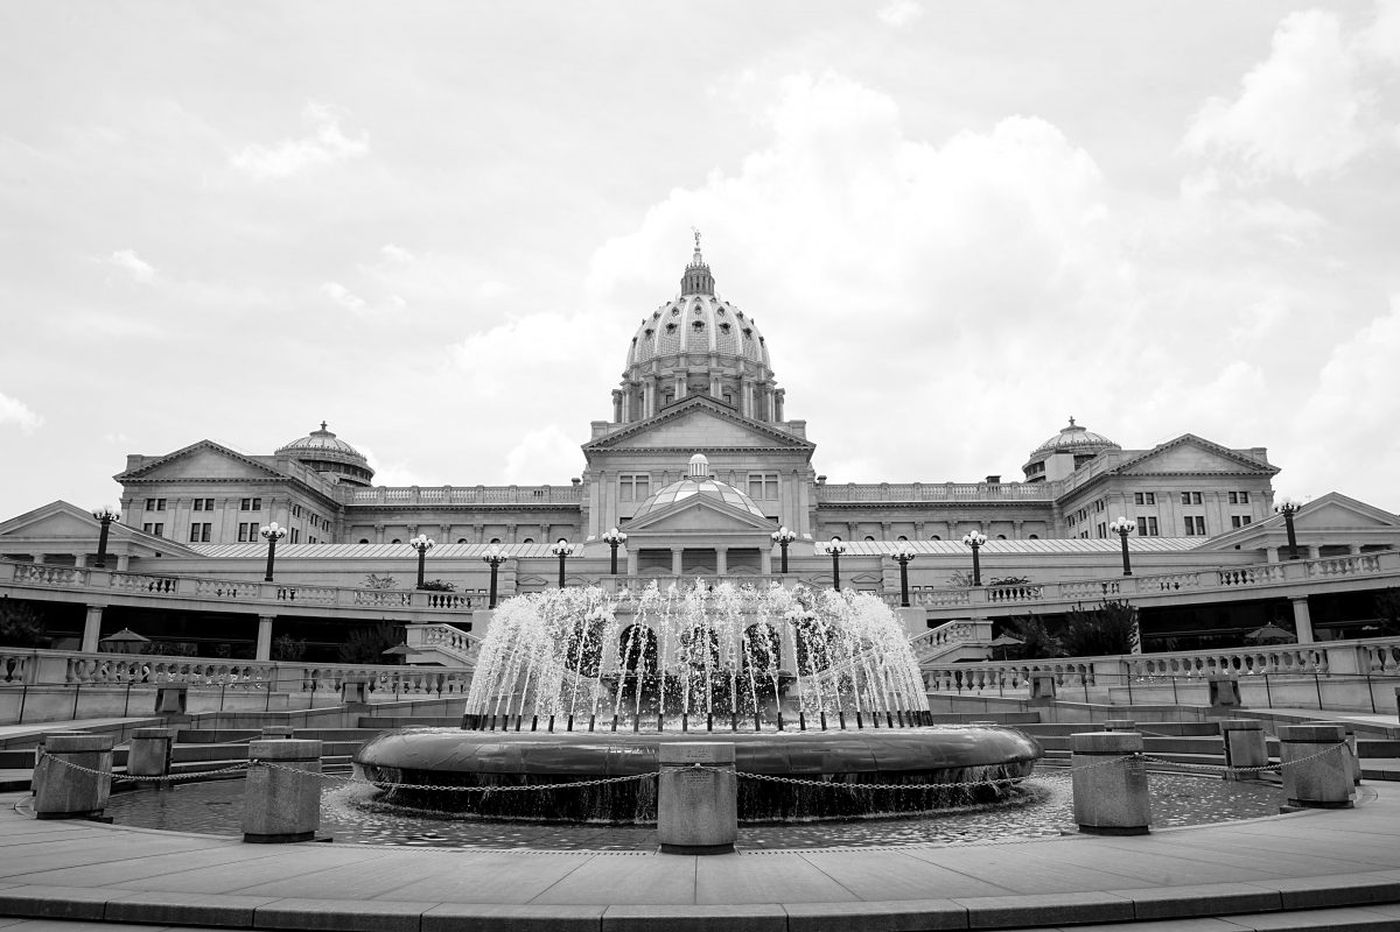 The mixed reaction to my calls for reform in Pa. | John Baer